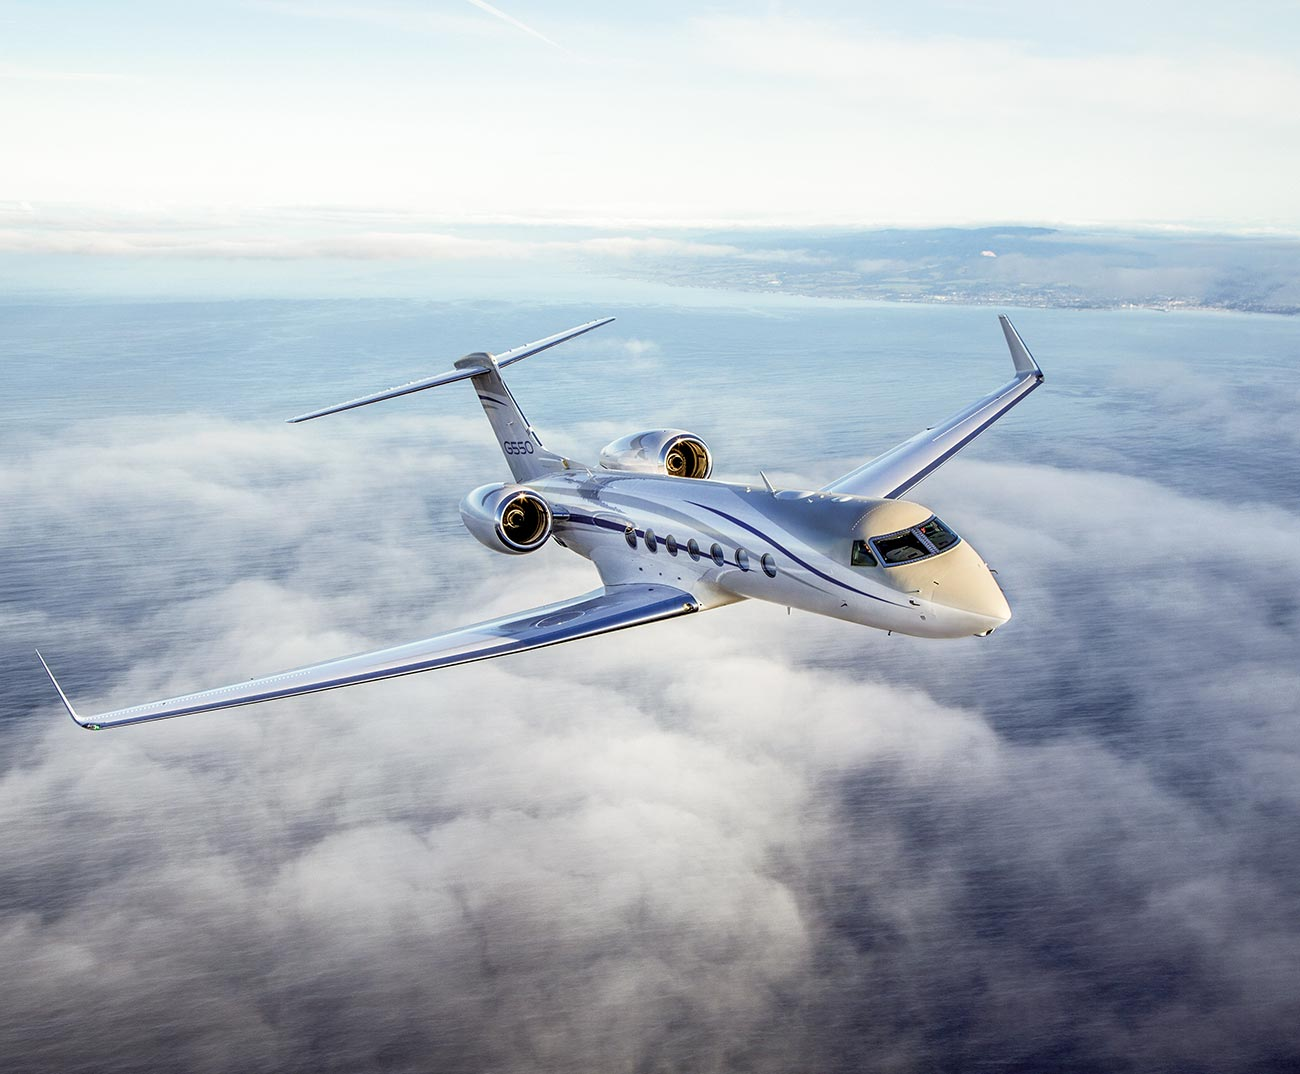 G550 flying over clouds